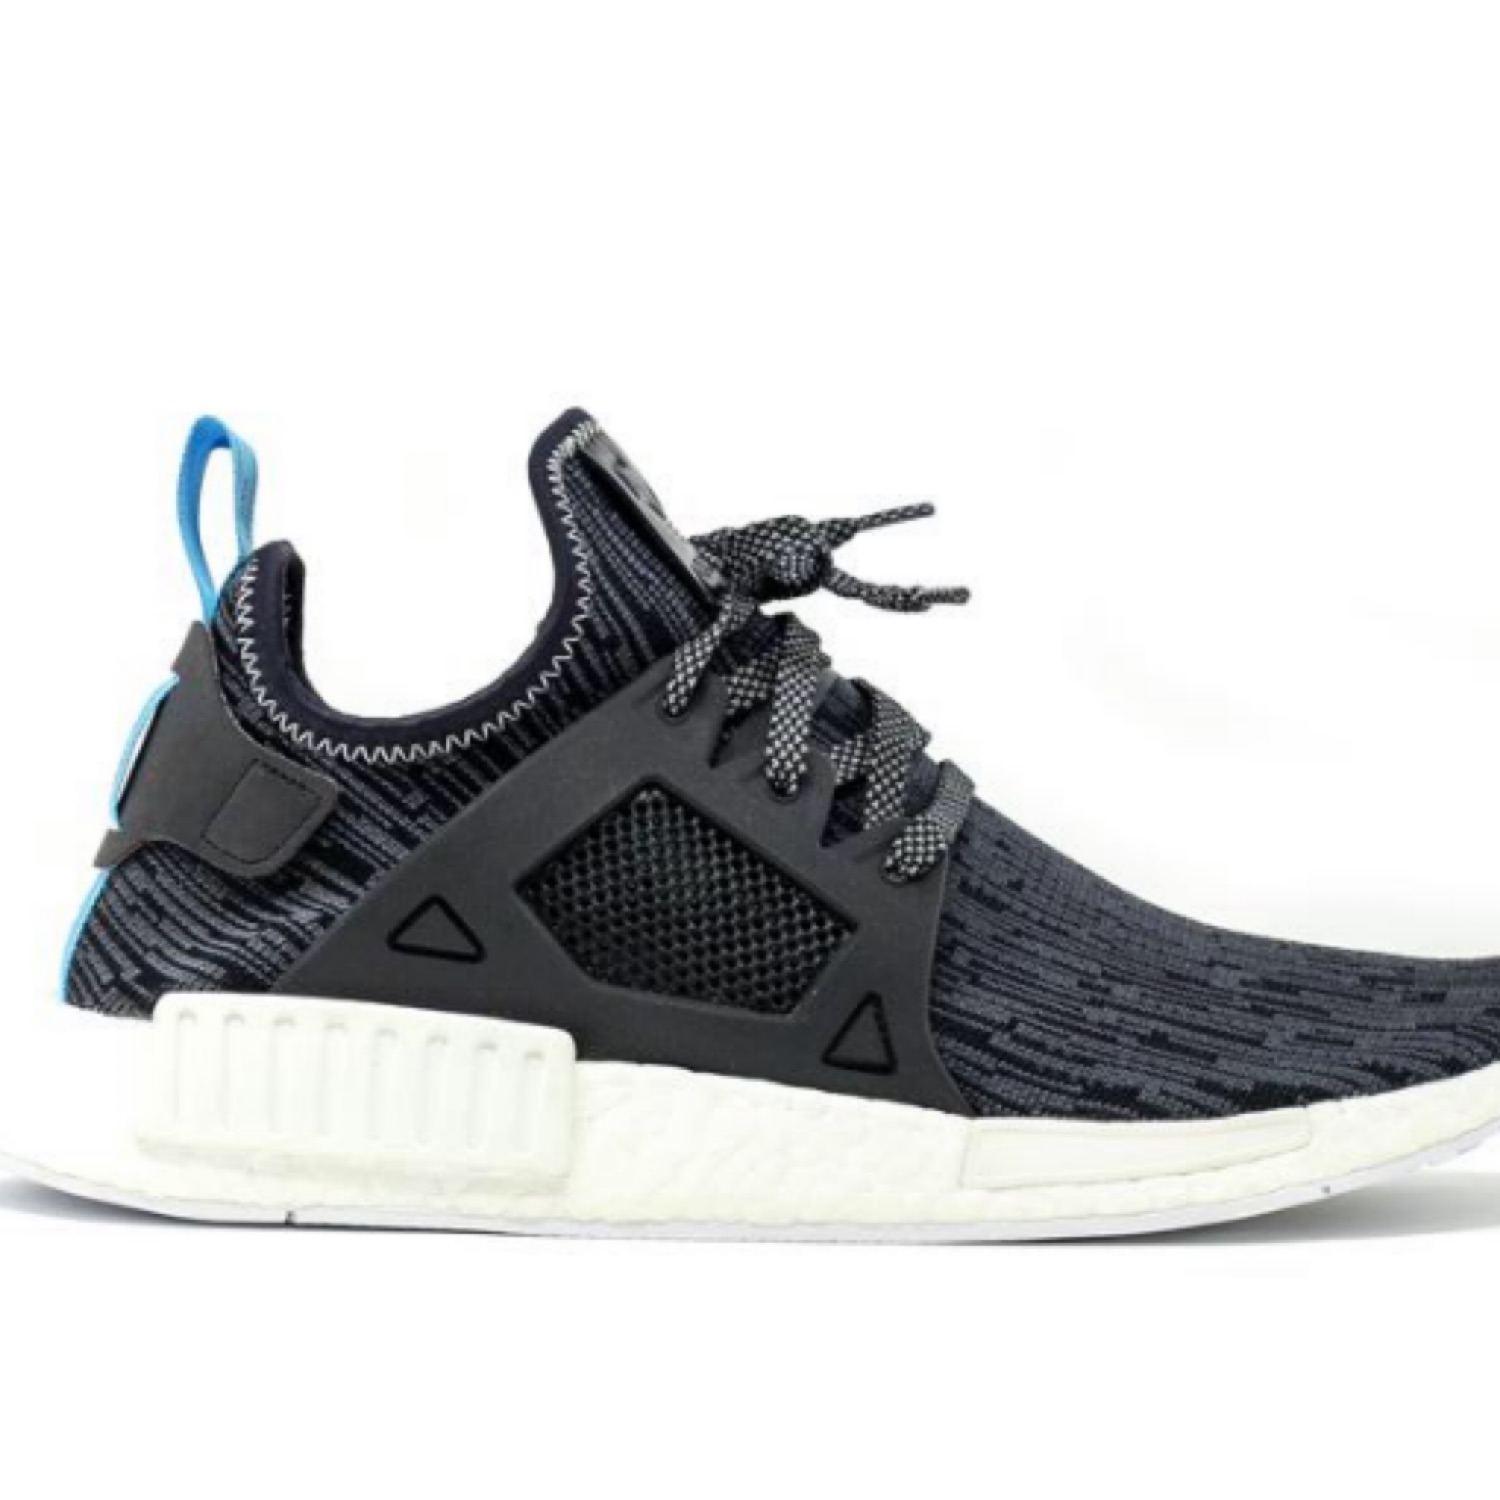 new style 88e25 758ee Adidas Nmd Xr1 Pk Glitch